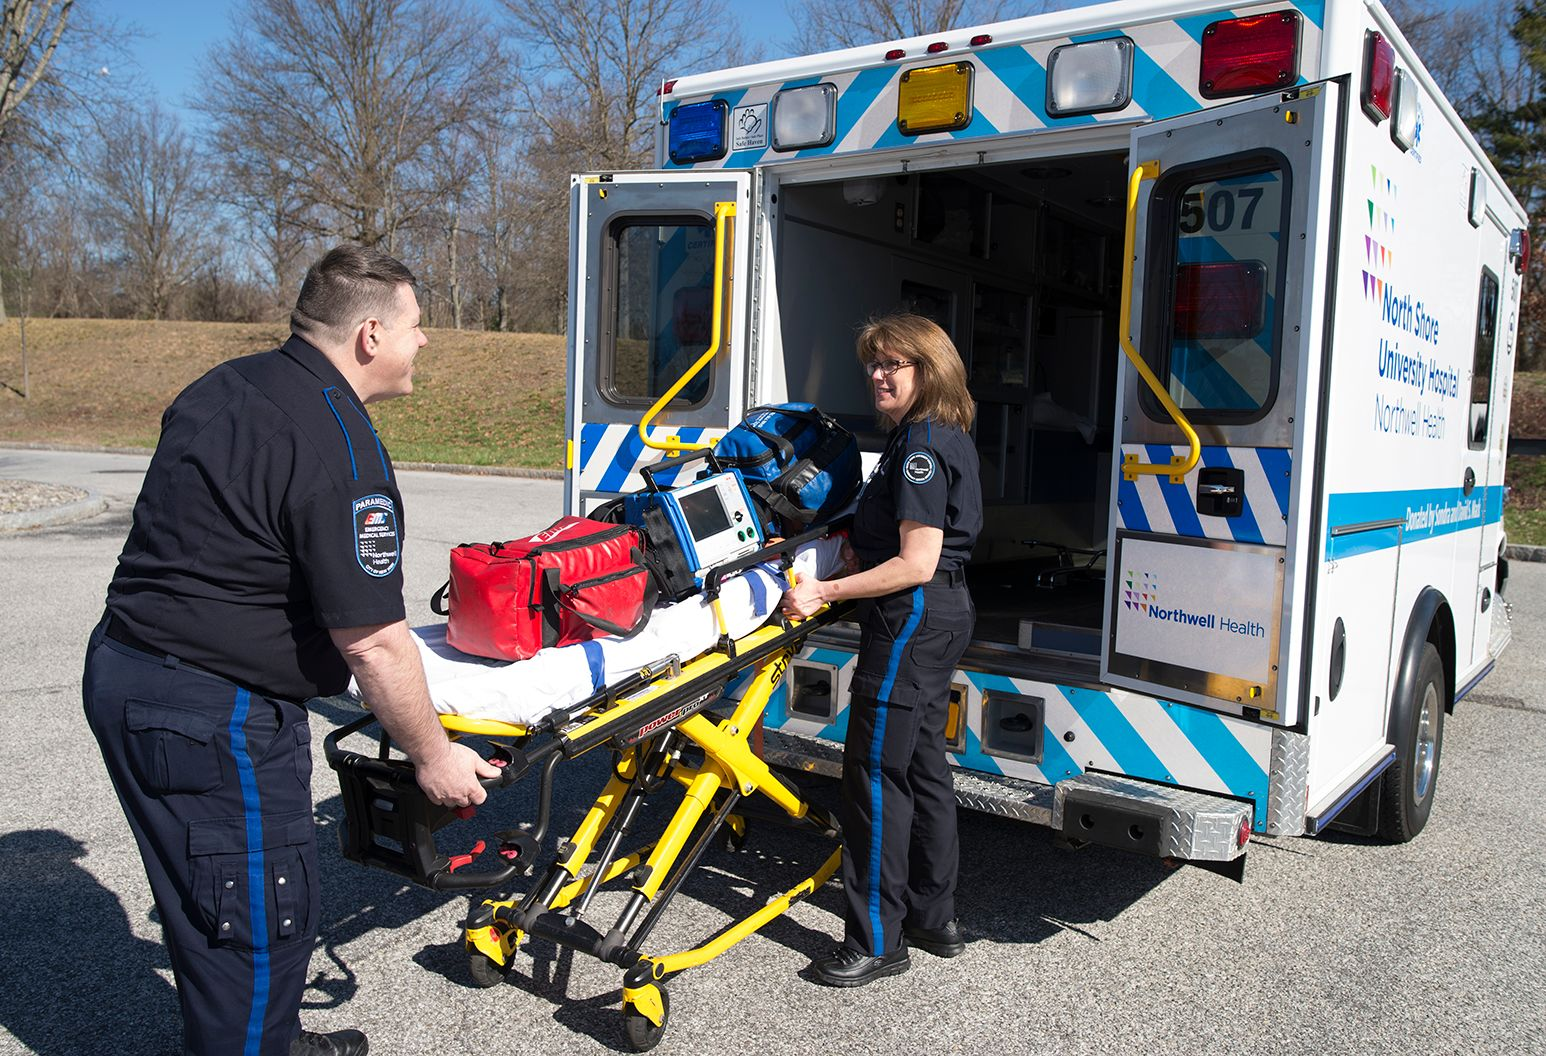 2 EMTs load a stretcher into the back of an ambulance.